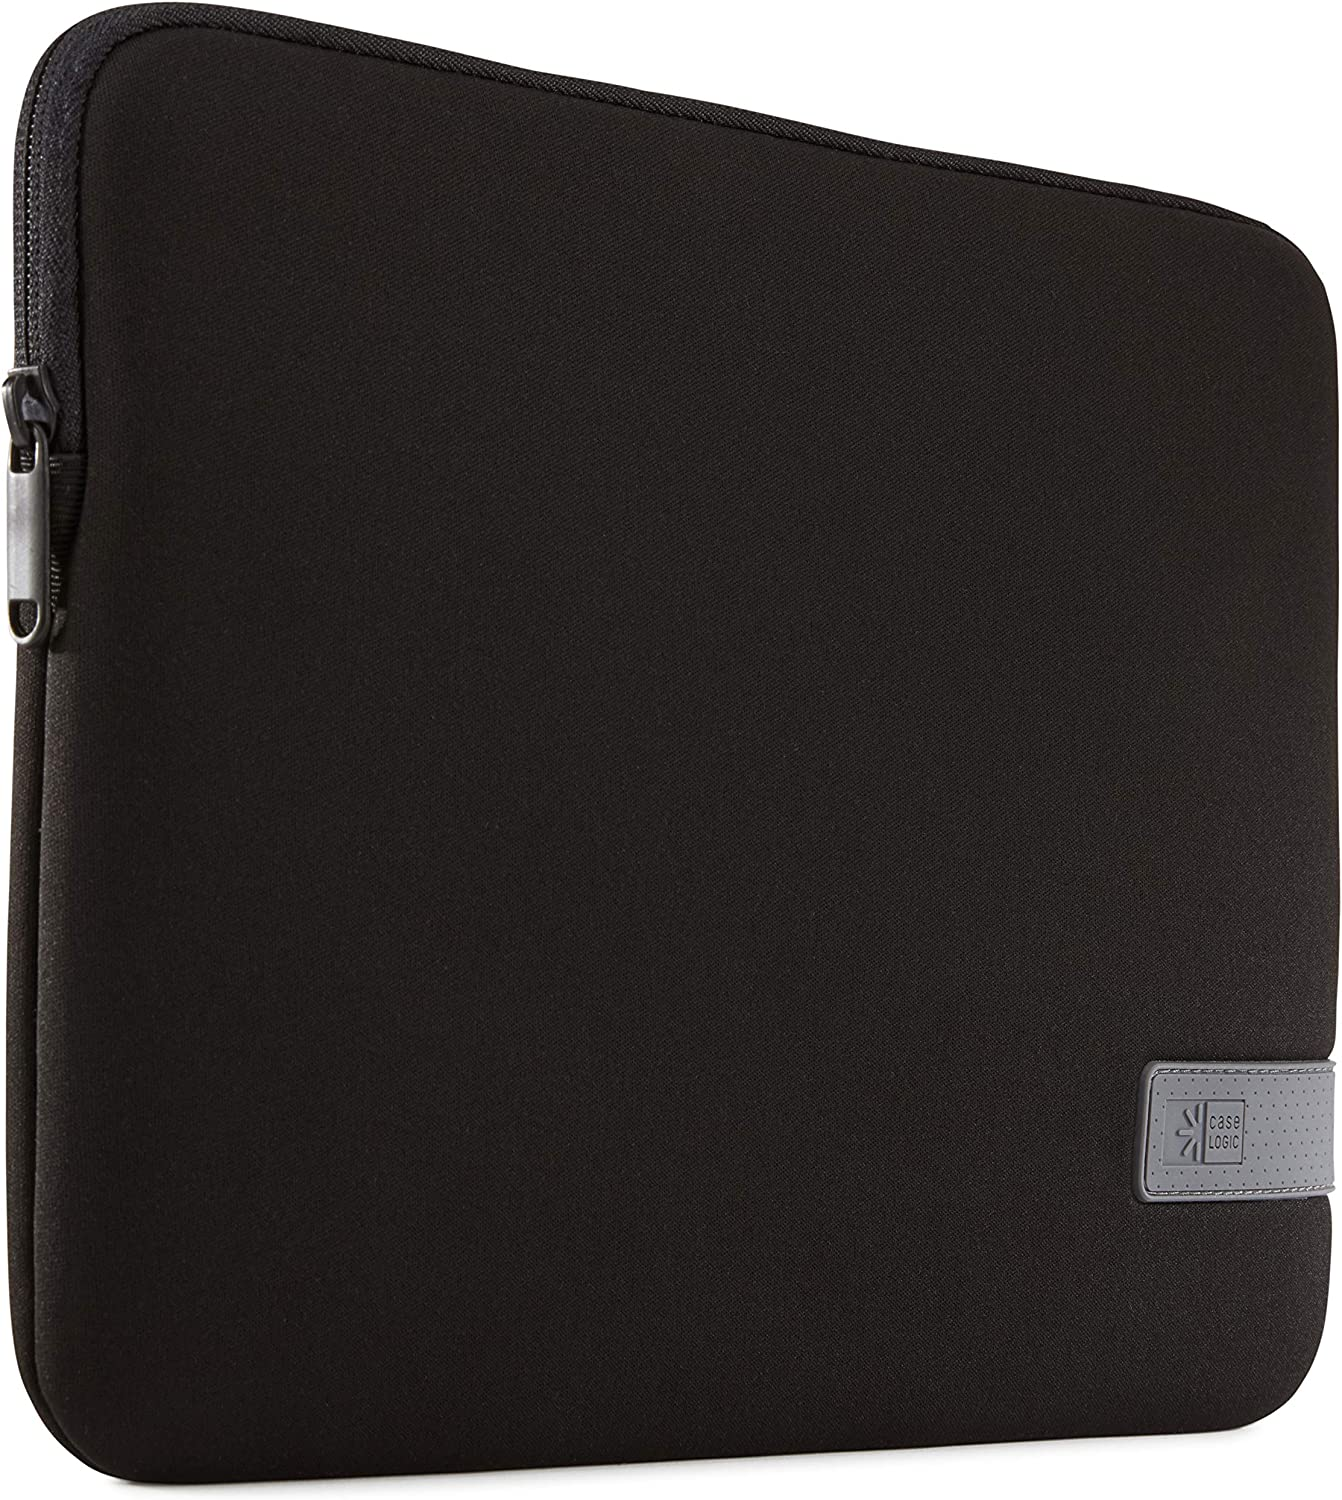 "Case Logic Reflect 13"" MacBook Pro Sleeve-Dark Blue, Black"